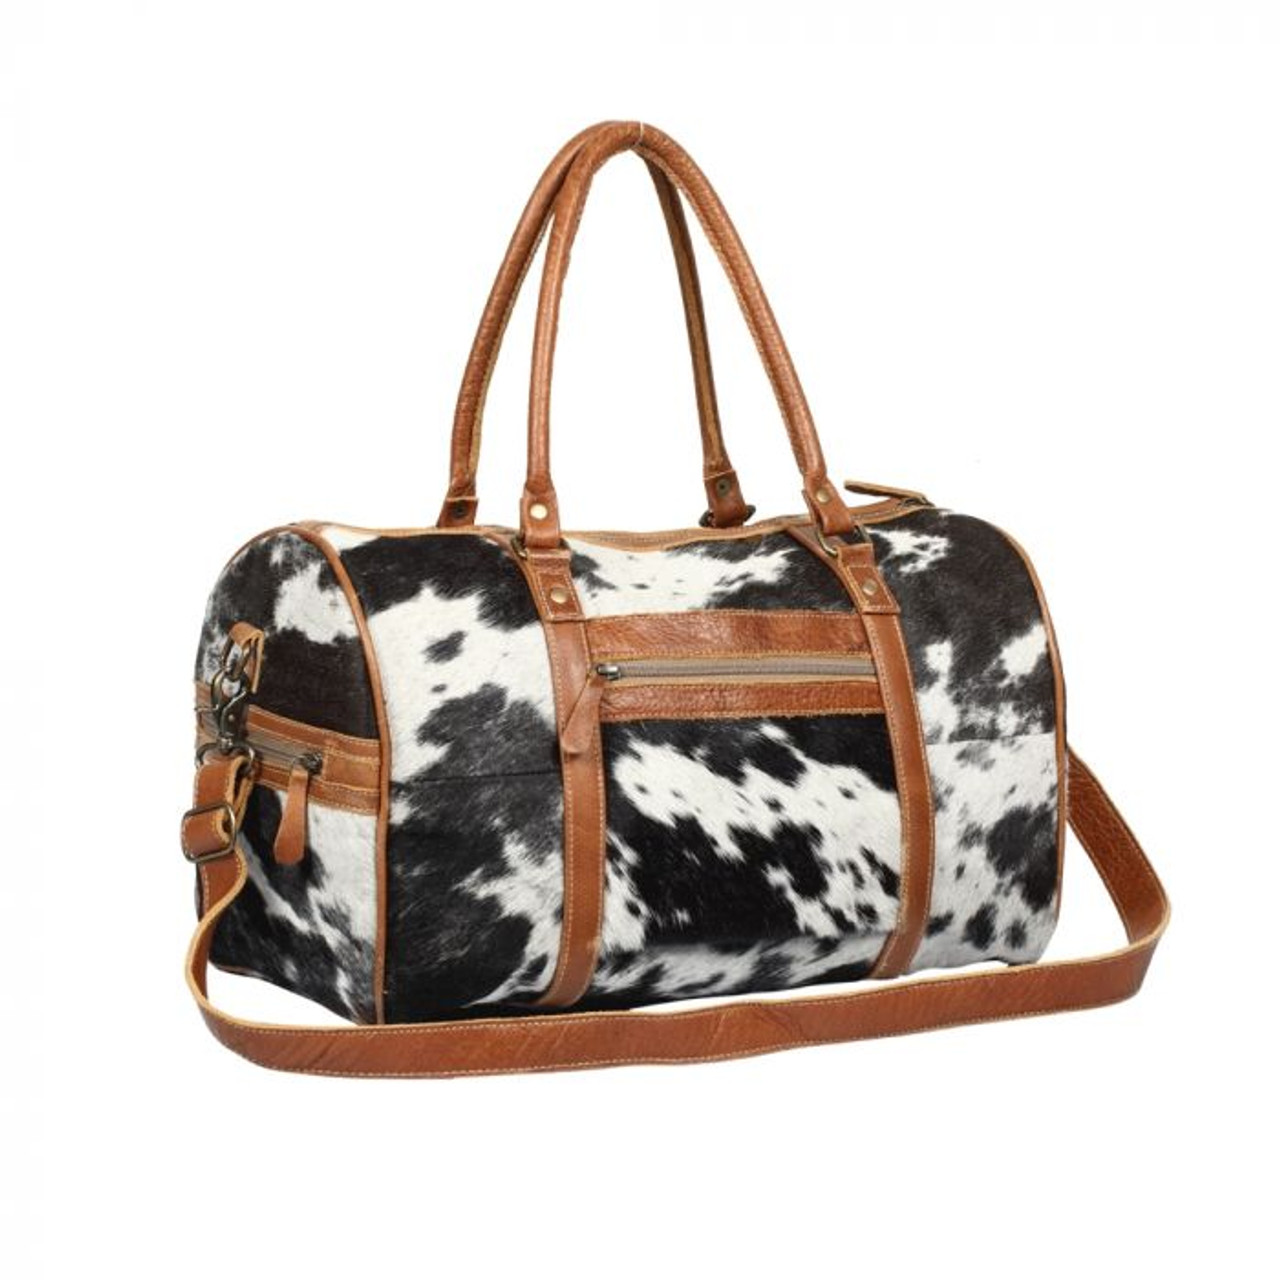 Onyx Traveller Overnight Bag Crutcher S Western Wear Also works well for carrying a lap top, and other work. onyx traveller overnight bag